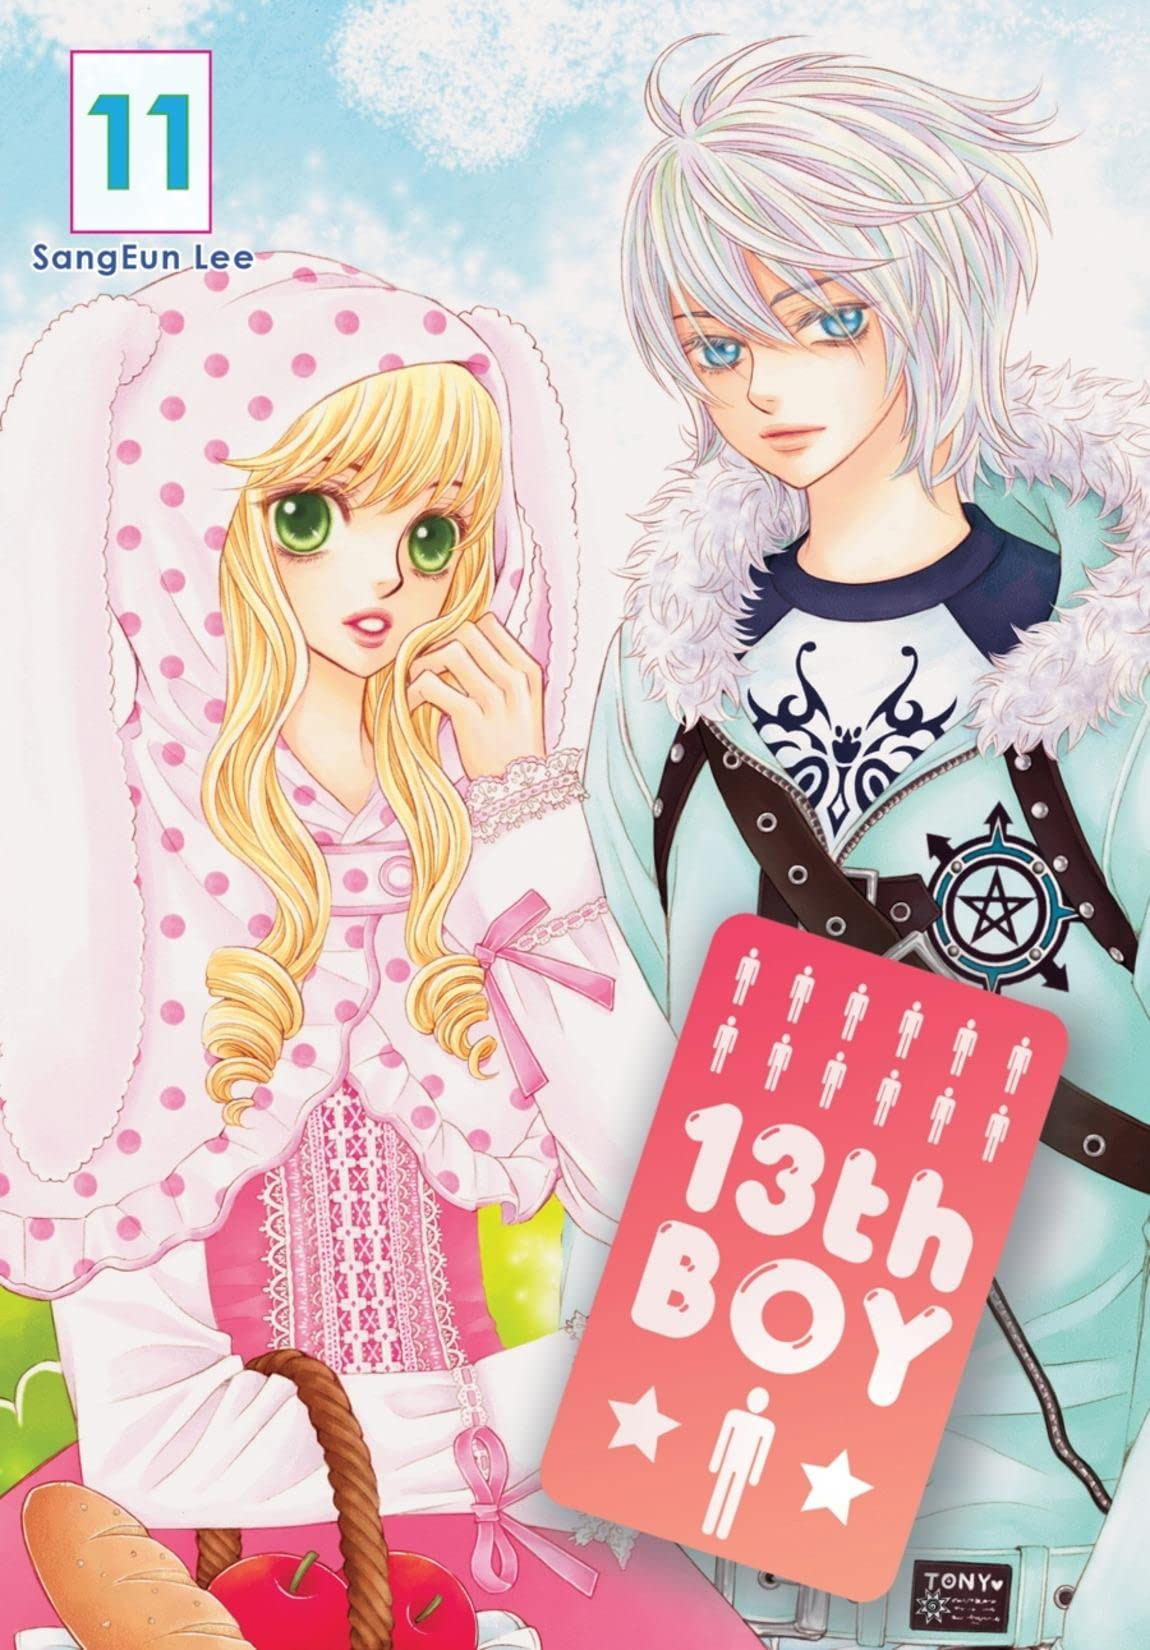 13th Boy Vol. 11